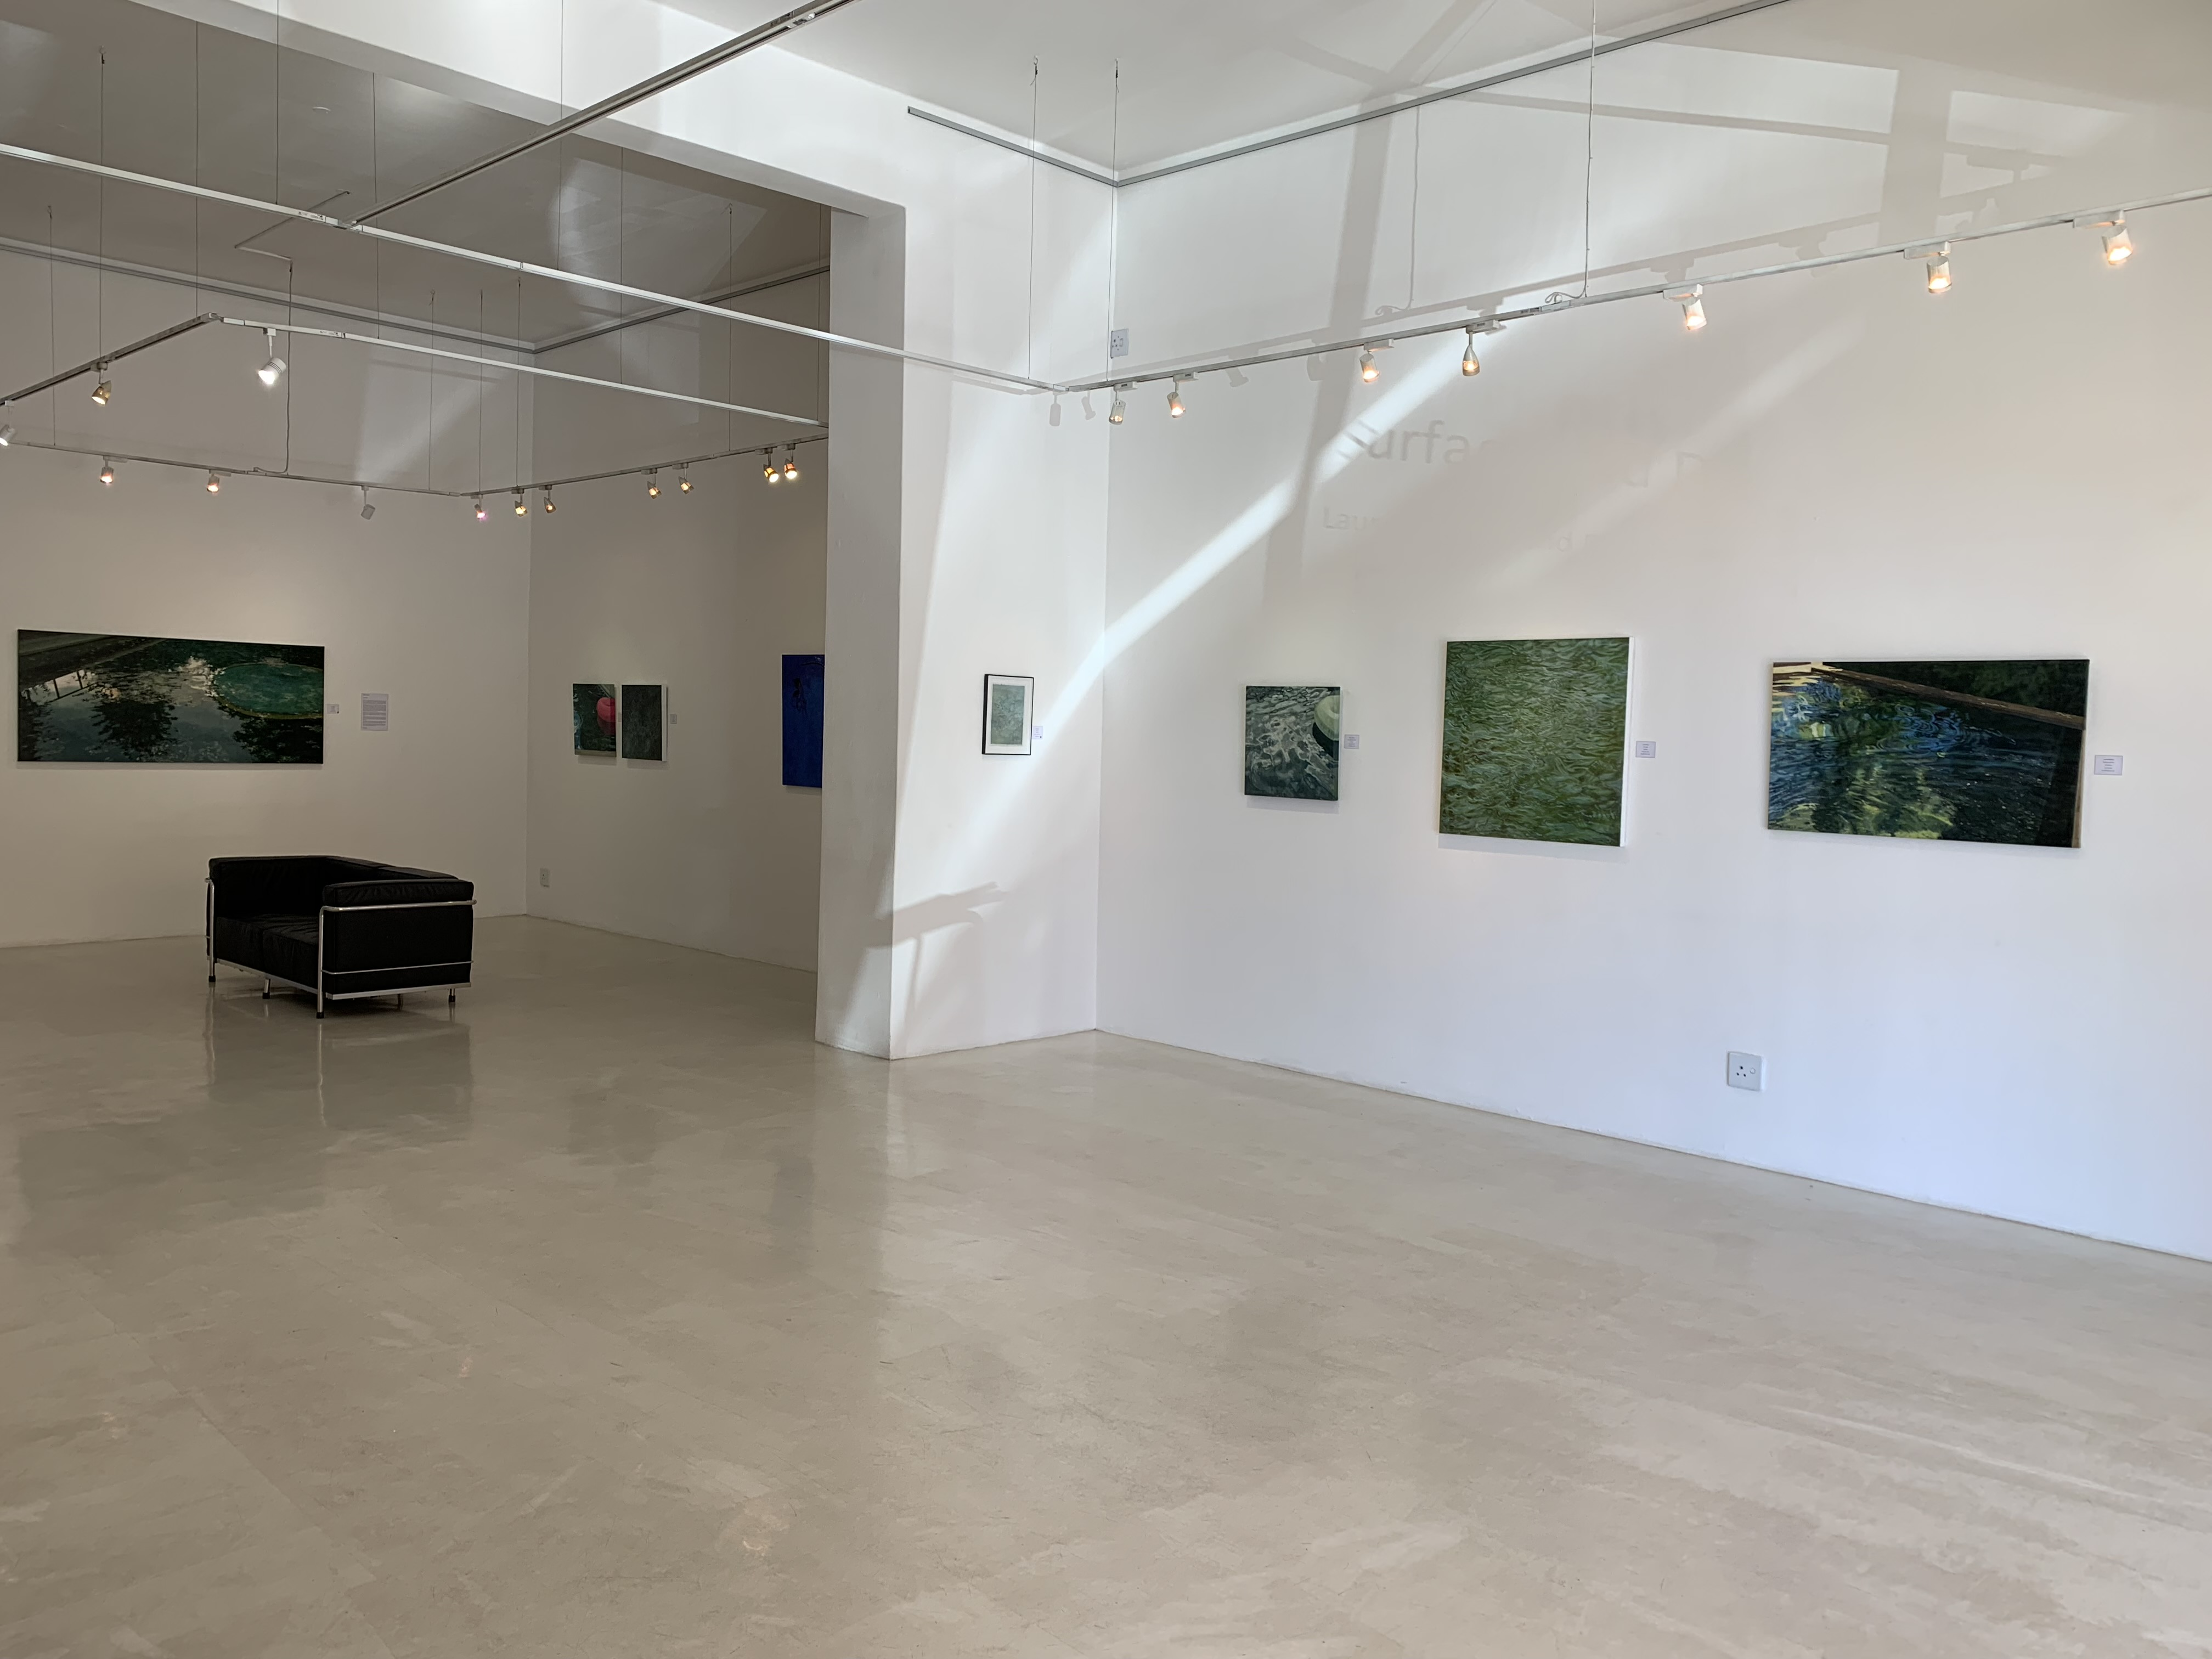 Surface and Depth Exhibition at Gallery 2